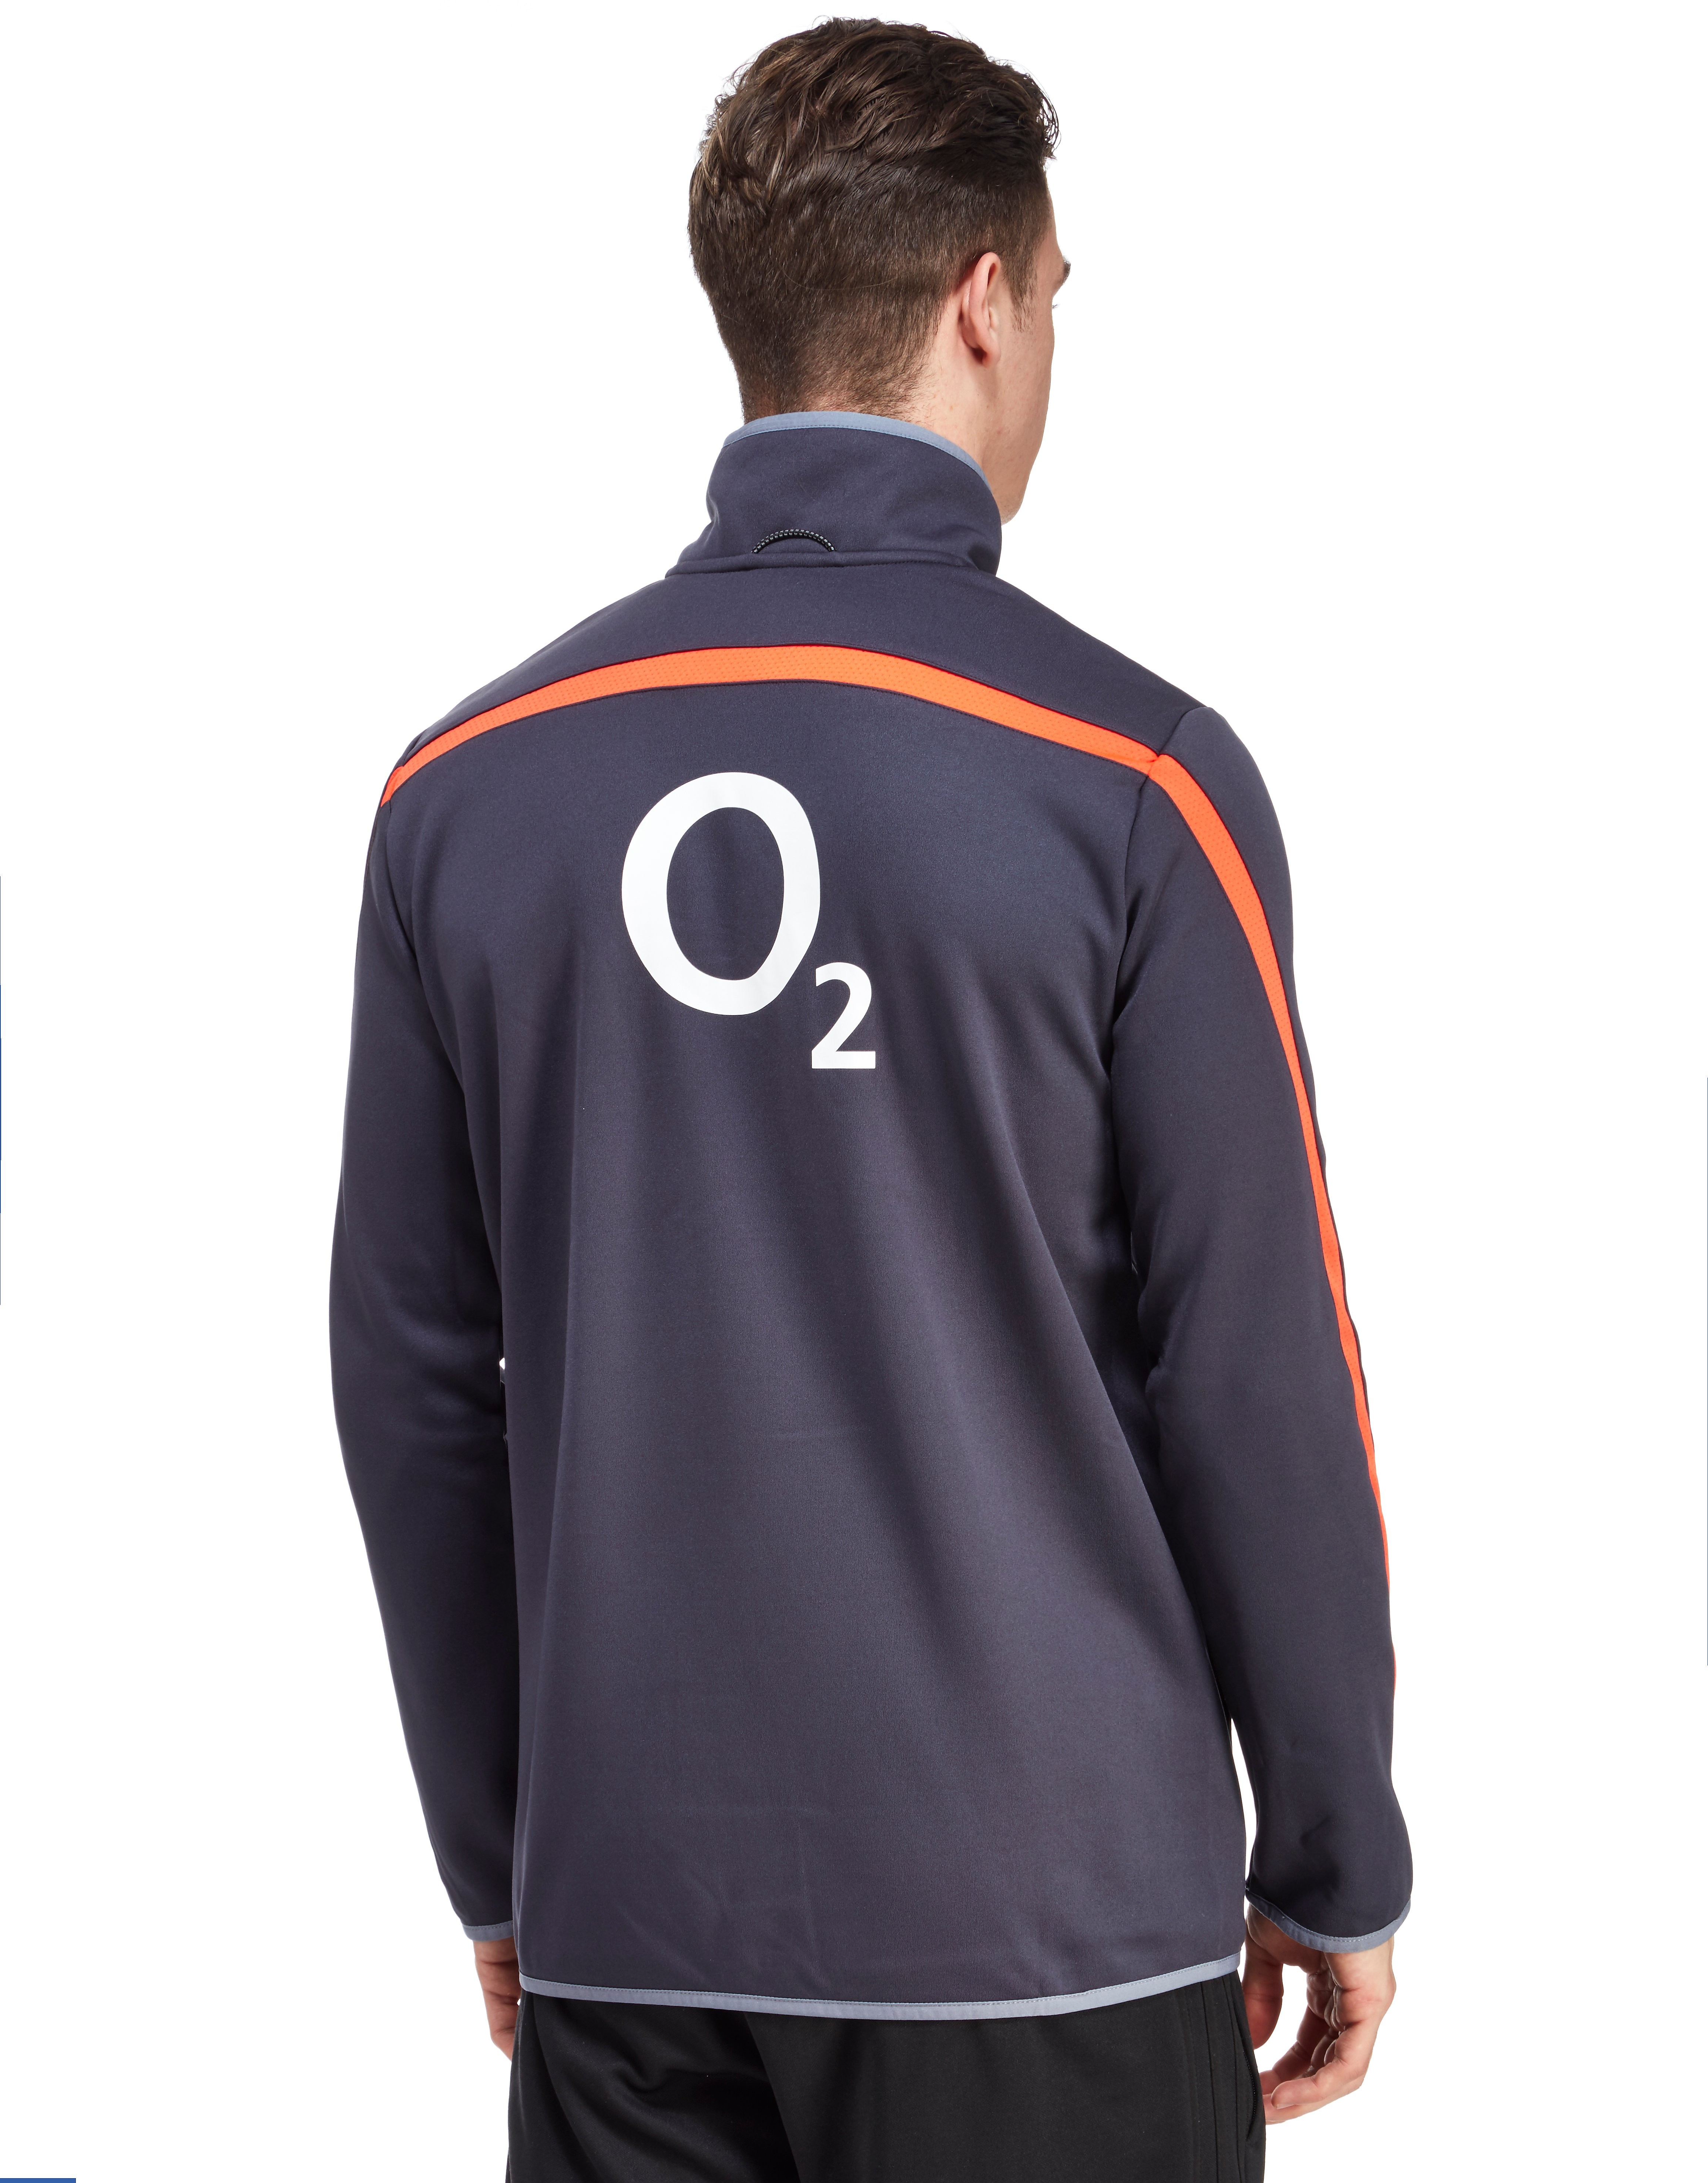 Canterbury England RFU Thermal Layer Half Zip Fleece